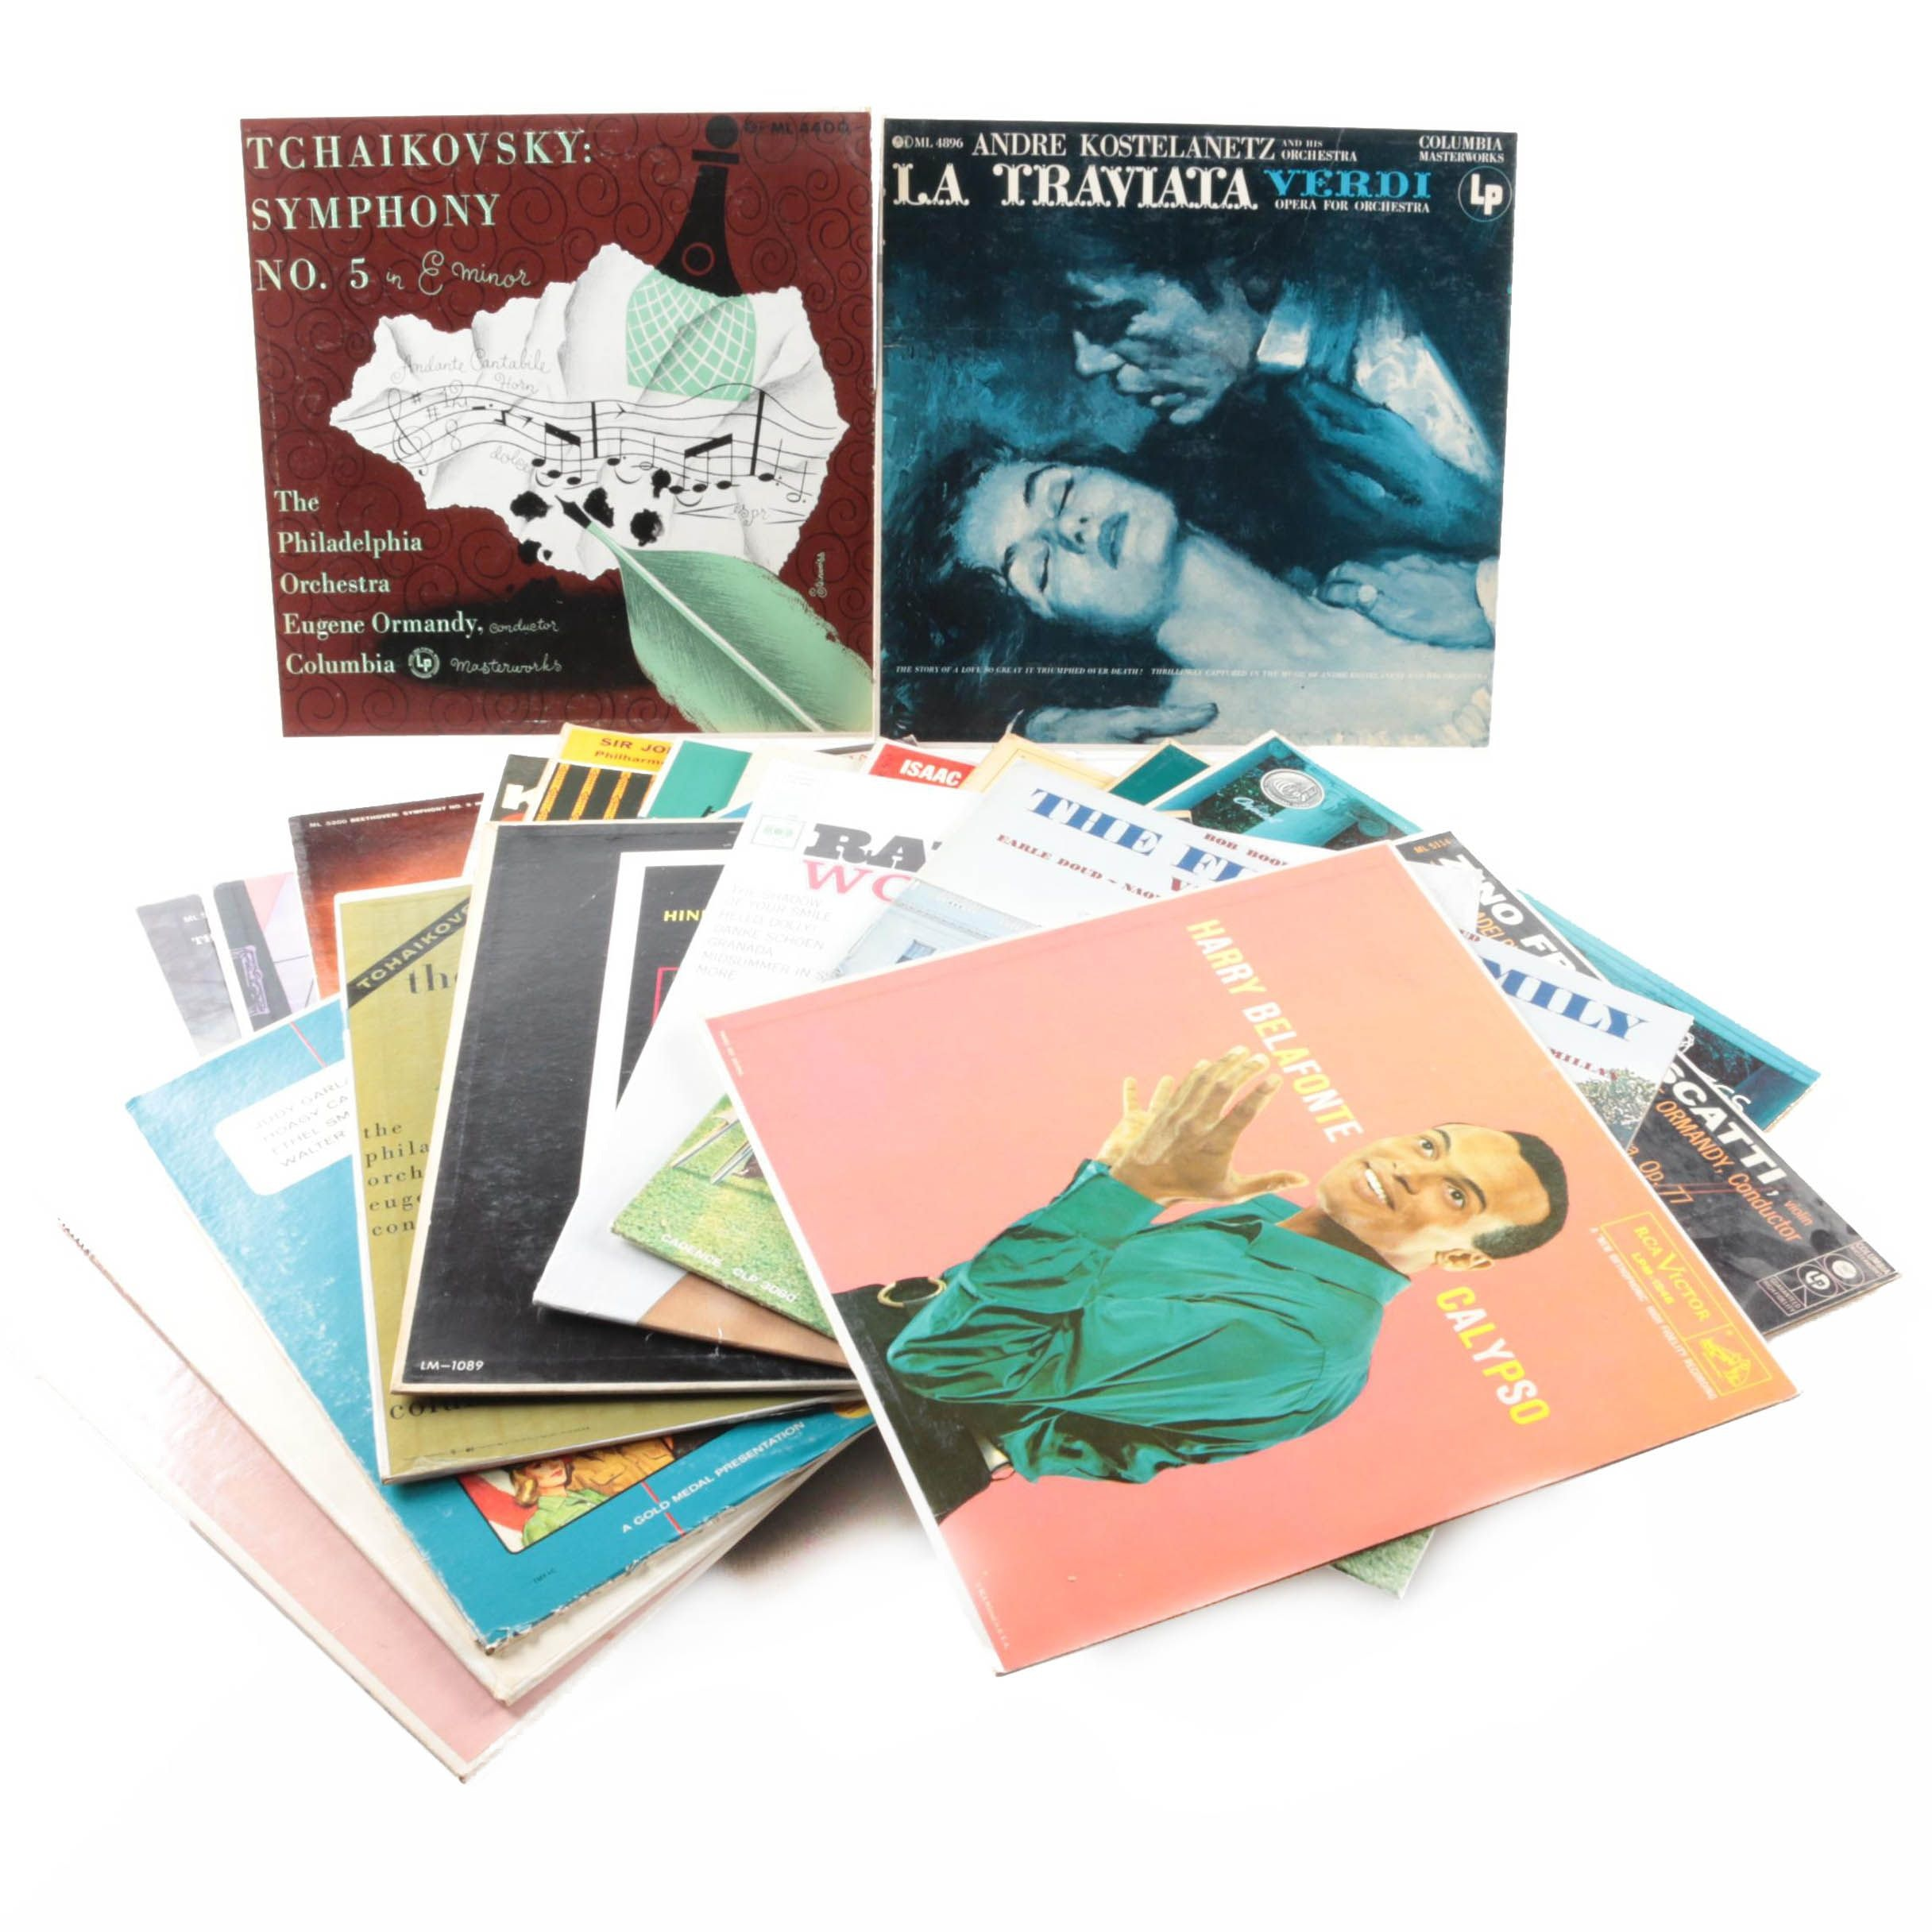 Harry Belafonte, Ray Conniff, The Philadelphia Orchestra, and Other Records